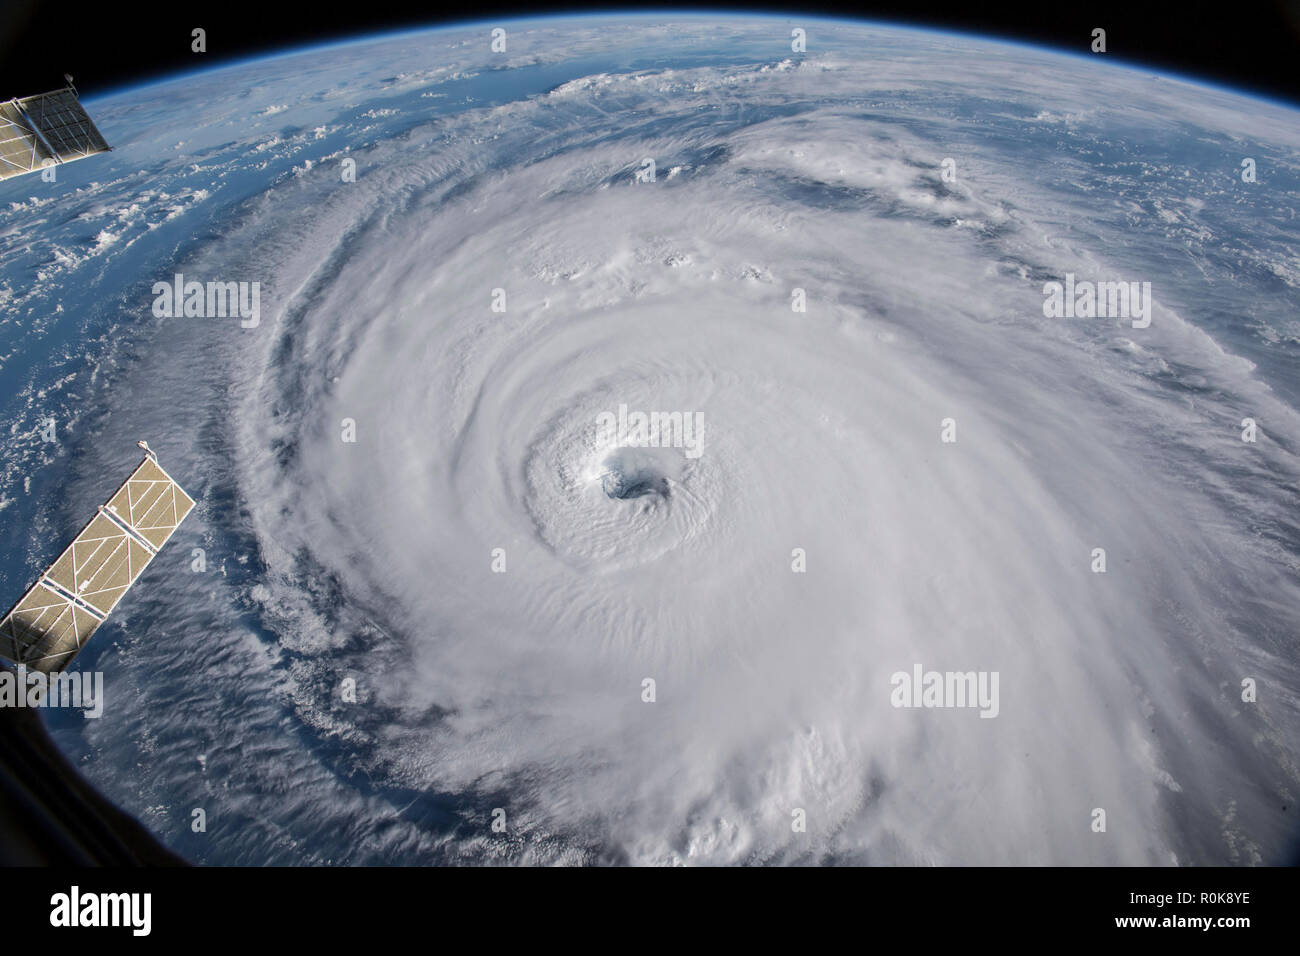 View from space of Hurricane Florence in the Atlantic Ocean. - Stock Image